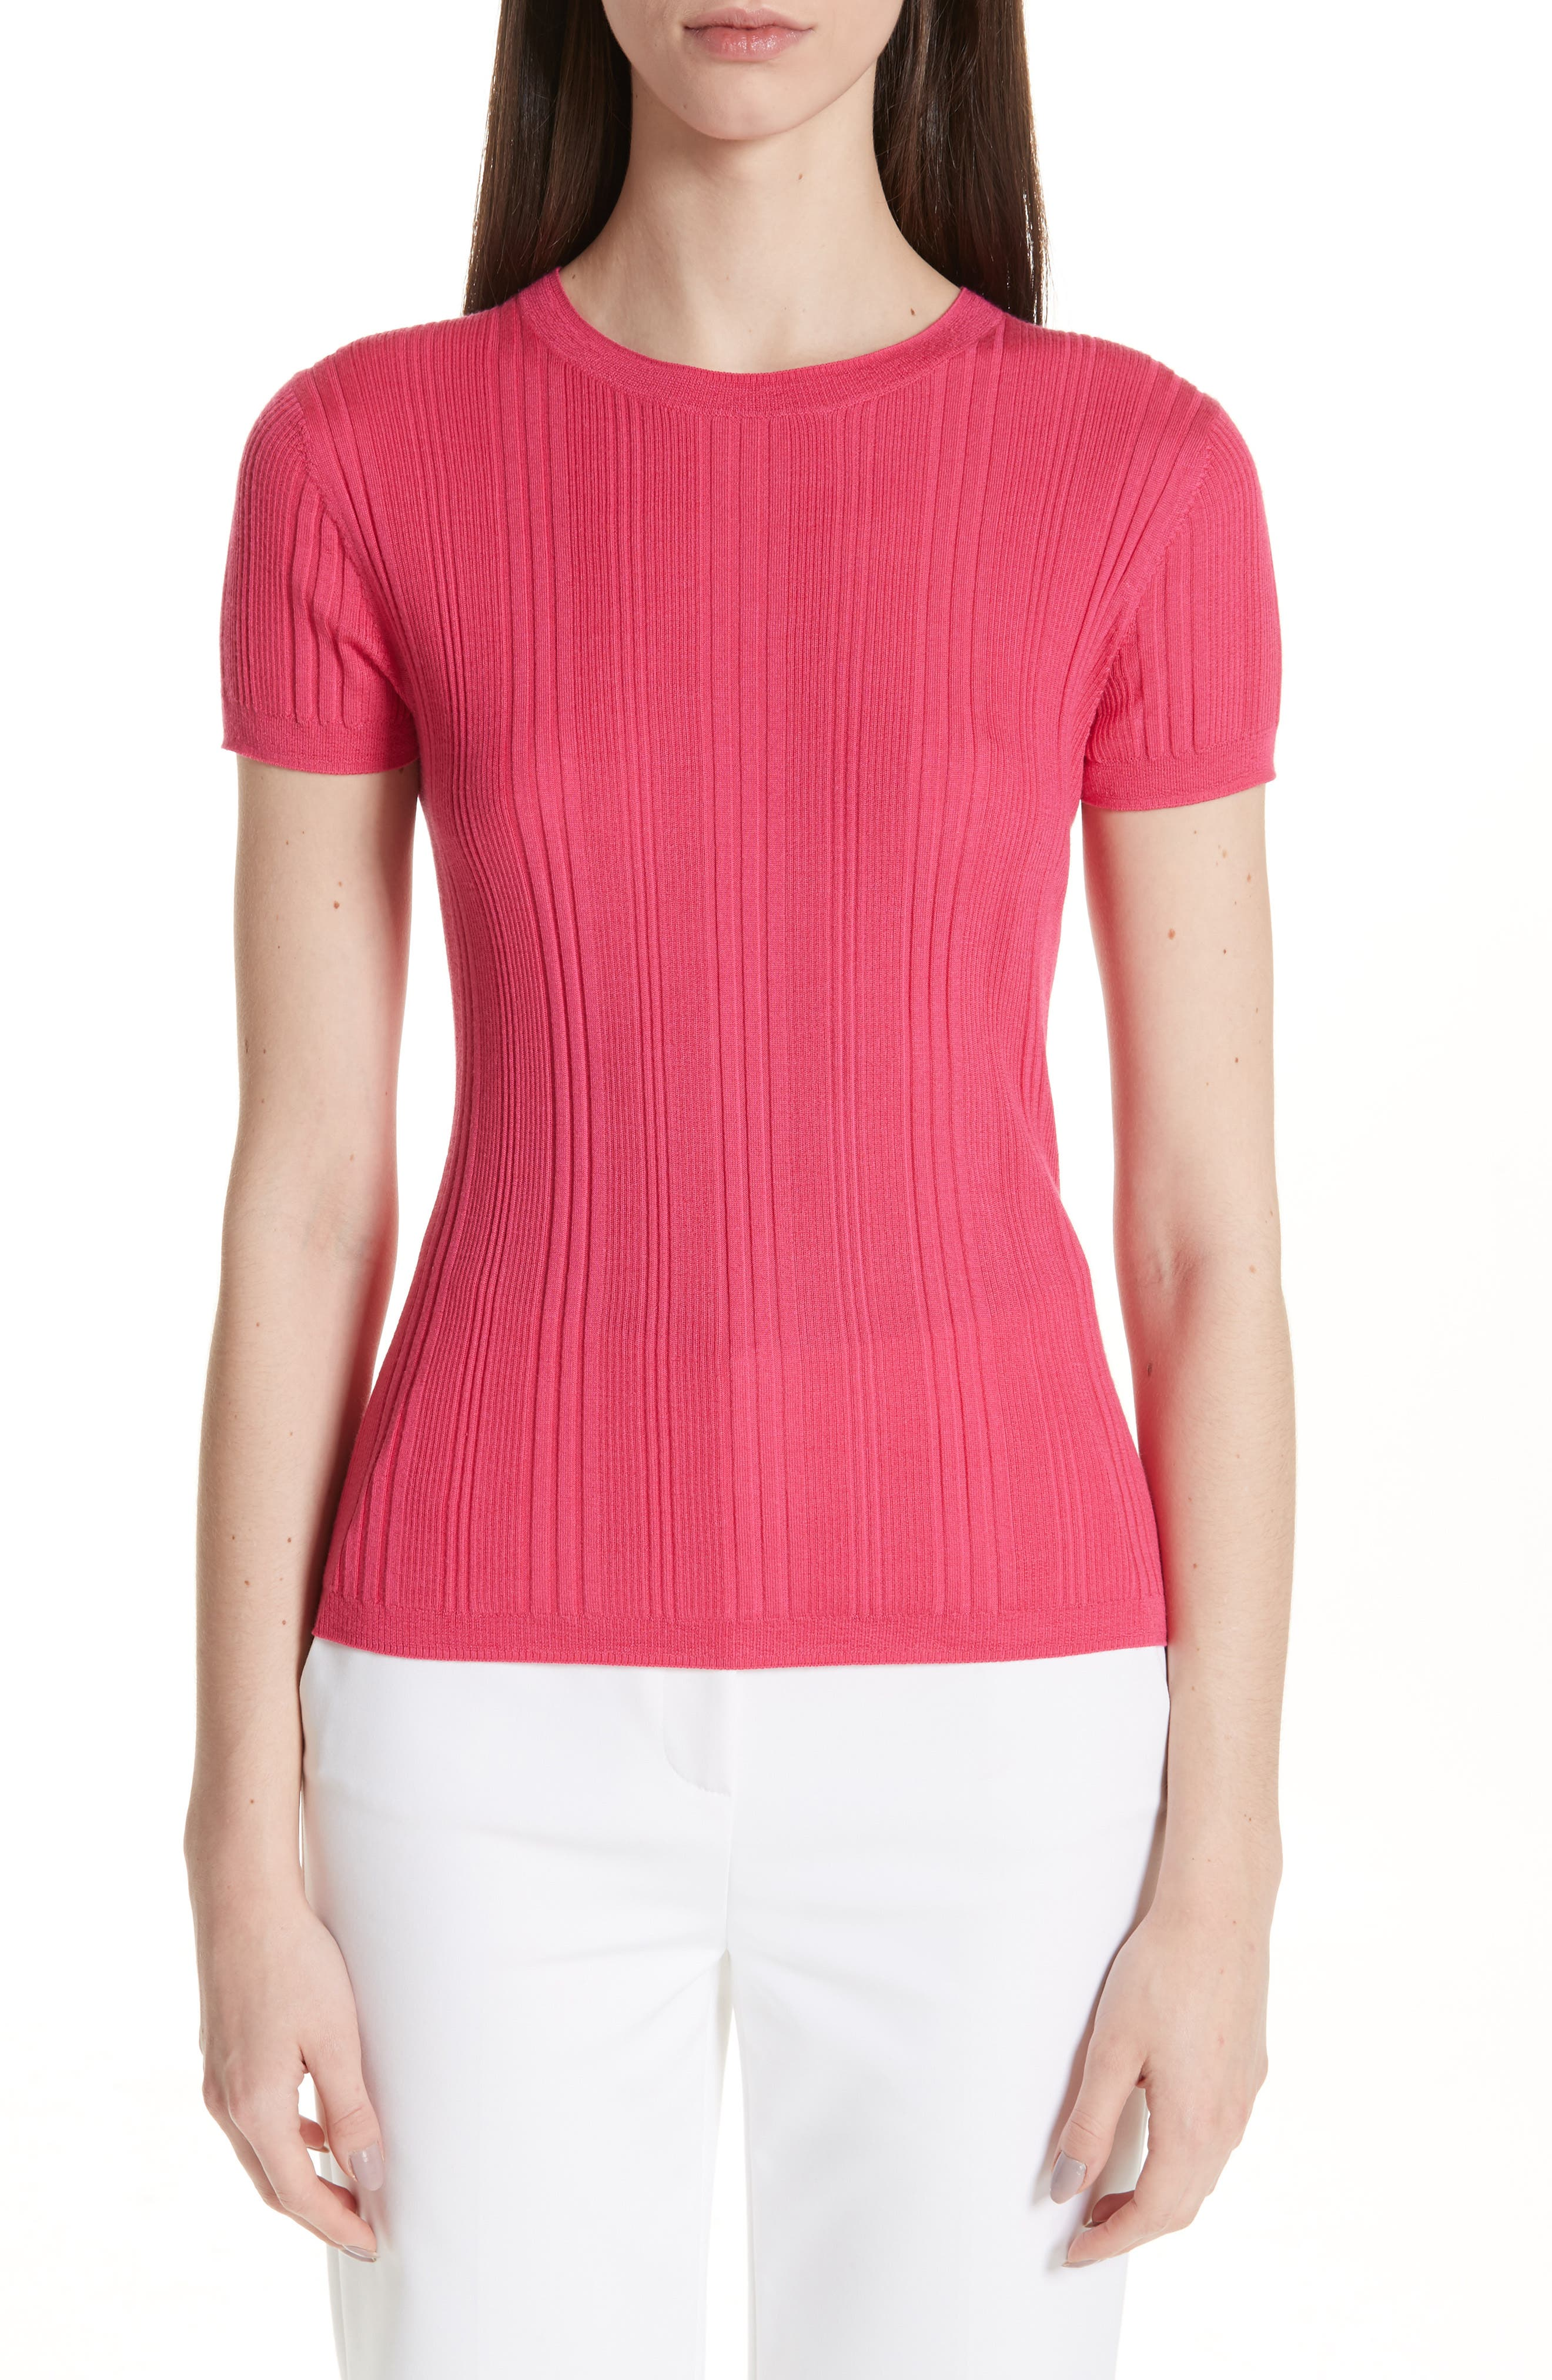 ST. JOHN COLLECTION Superfine Variegated Rib Sweater, Main, color, FLAMINGO